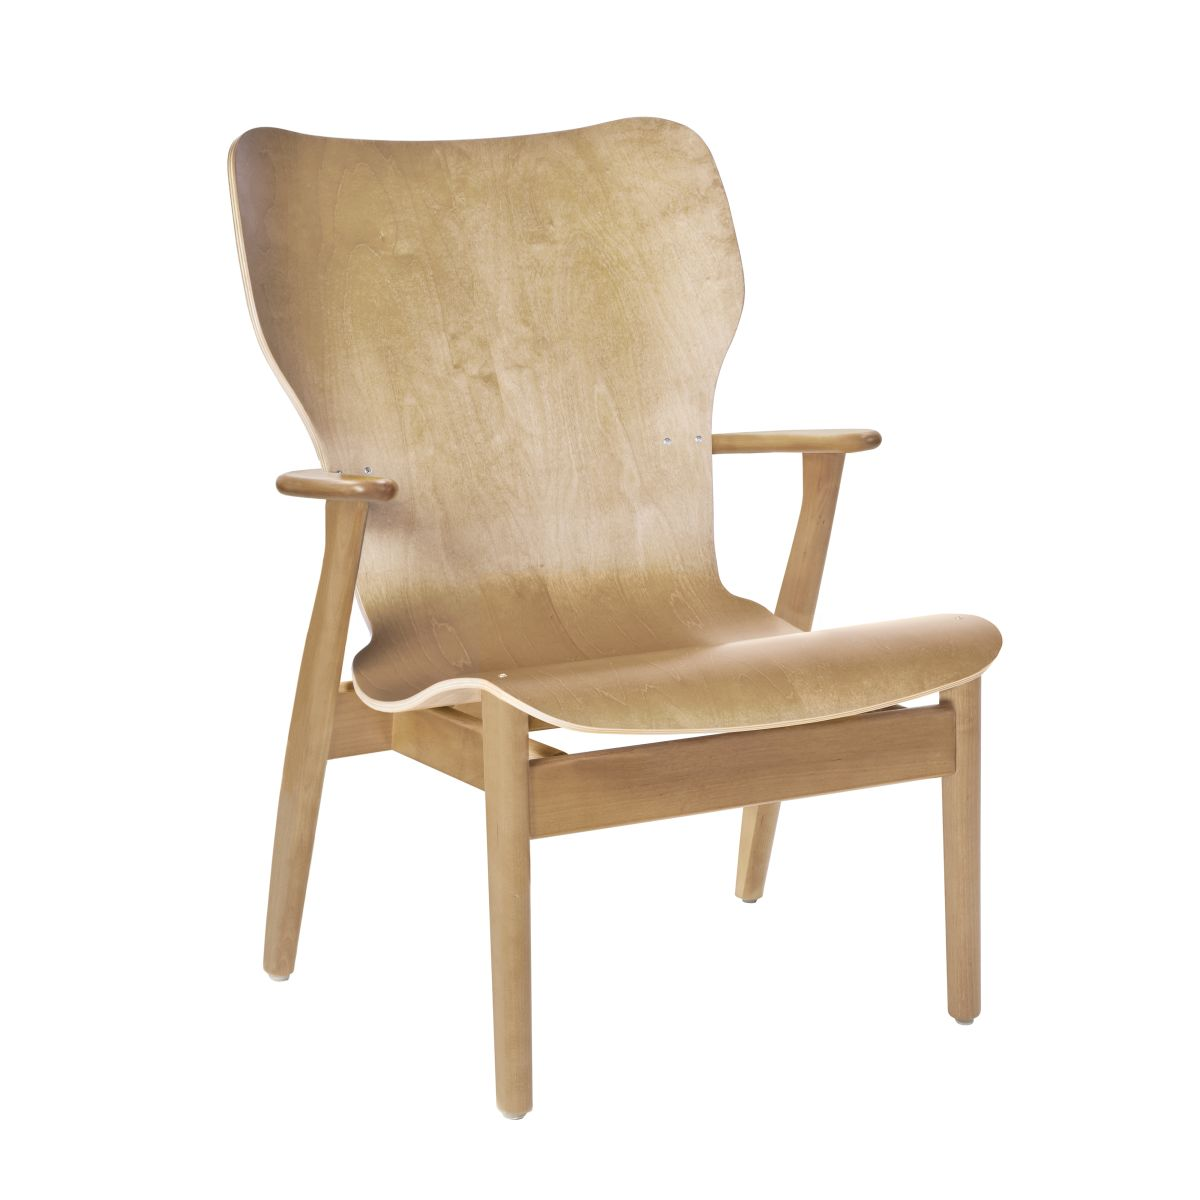 Domus Lounge Chair Clear Laquered Birch No Upholstery 2494514